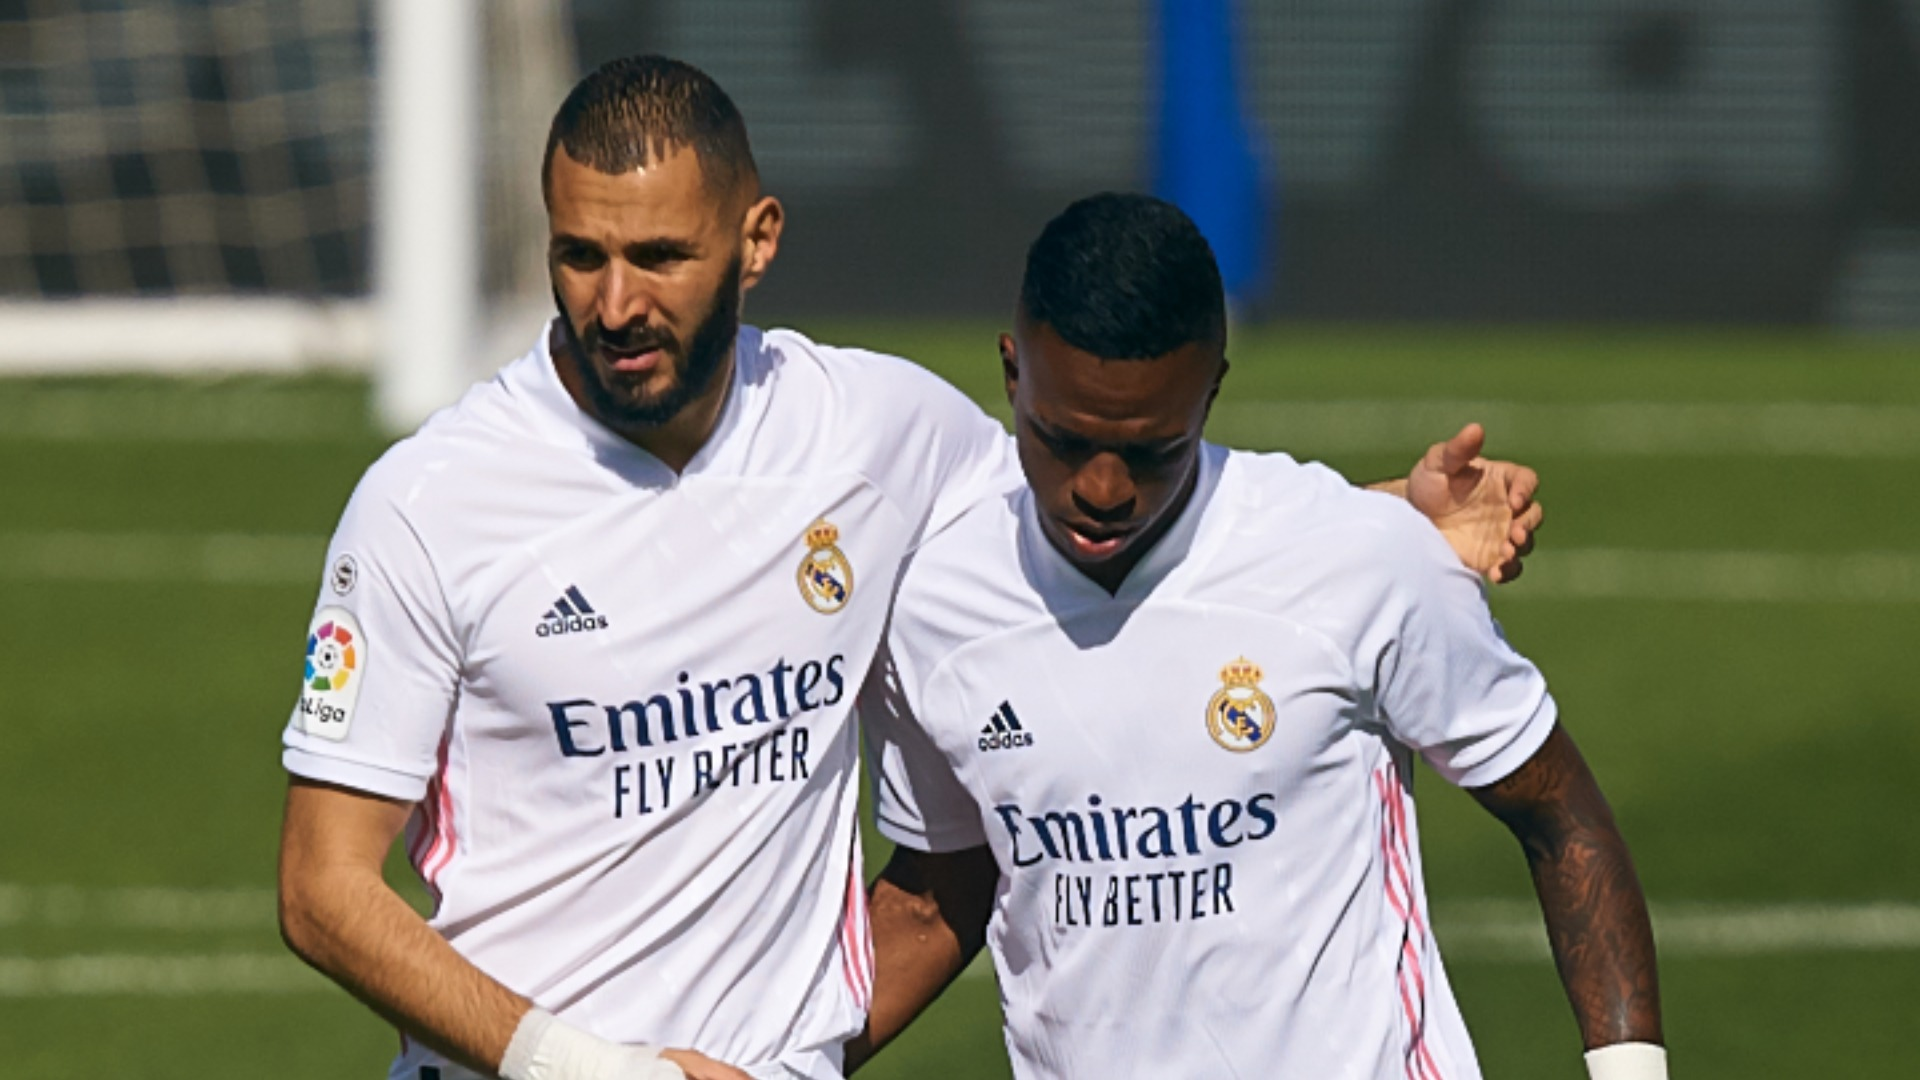 'Benzema is my idol, it's an honour to play with him' - Vinicius credits Madrid striker for aiding his development